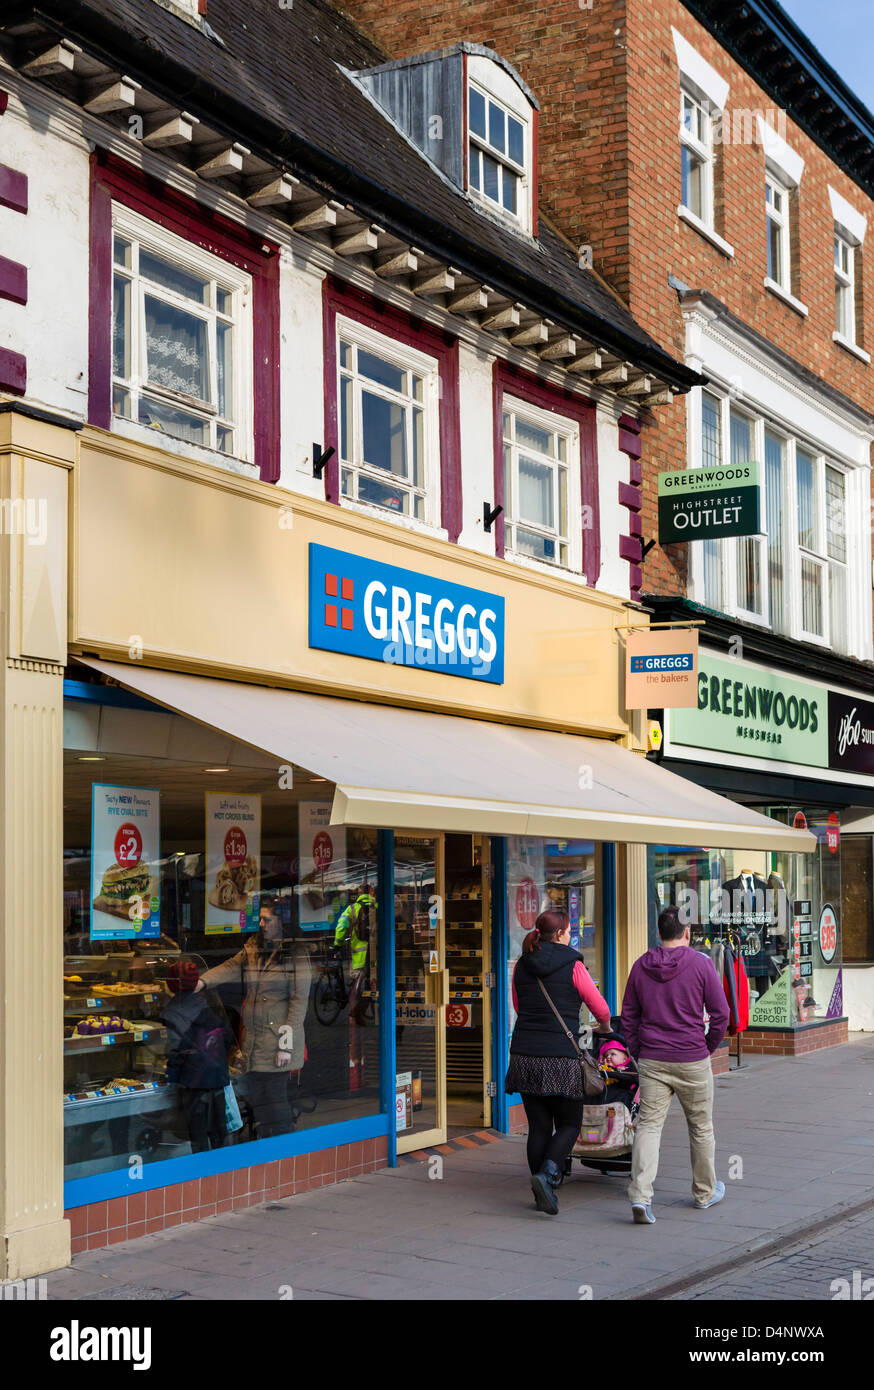 Greggs bakery outlet in Melton Mowbray, Leicestershire, UK - Stock Image